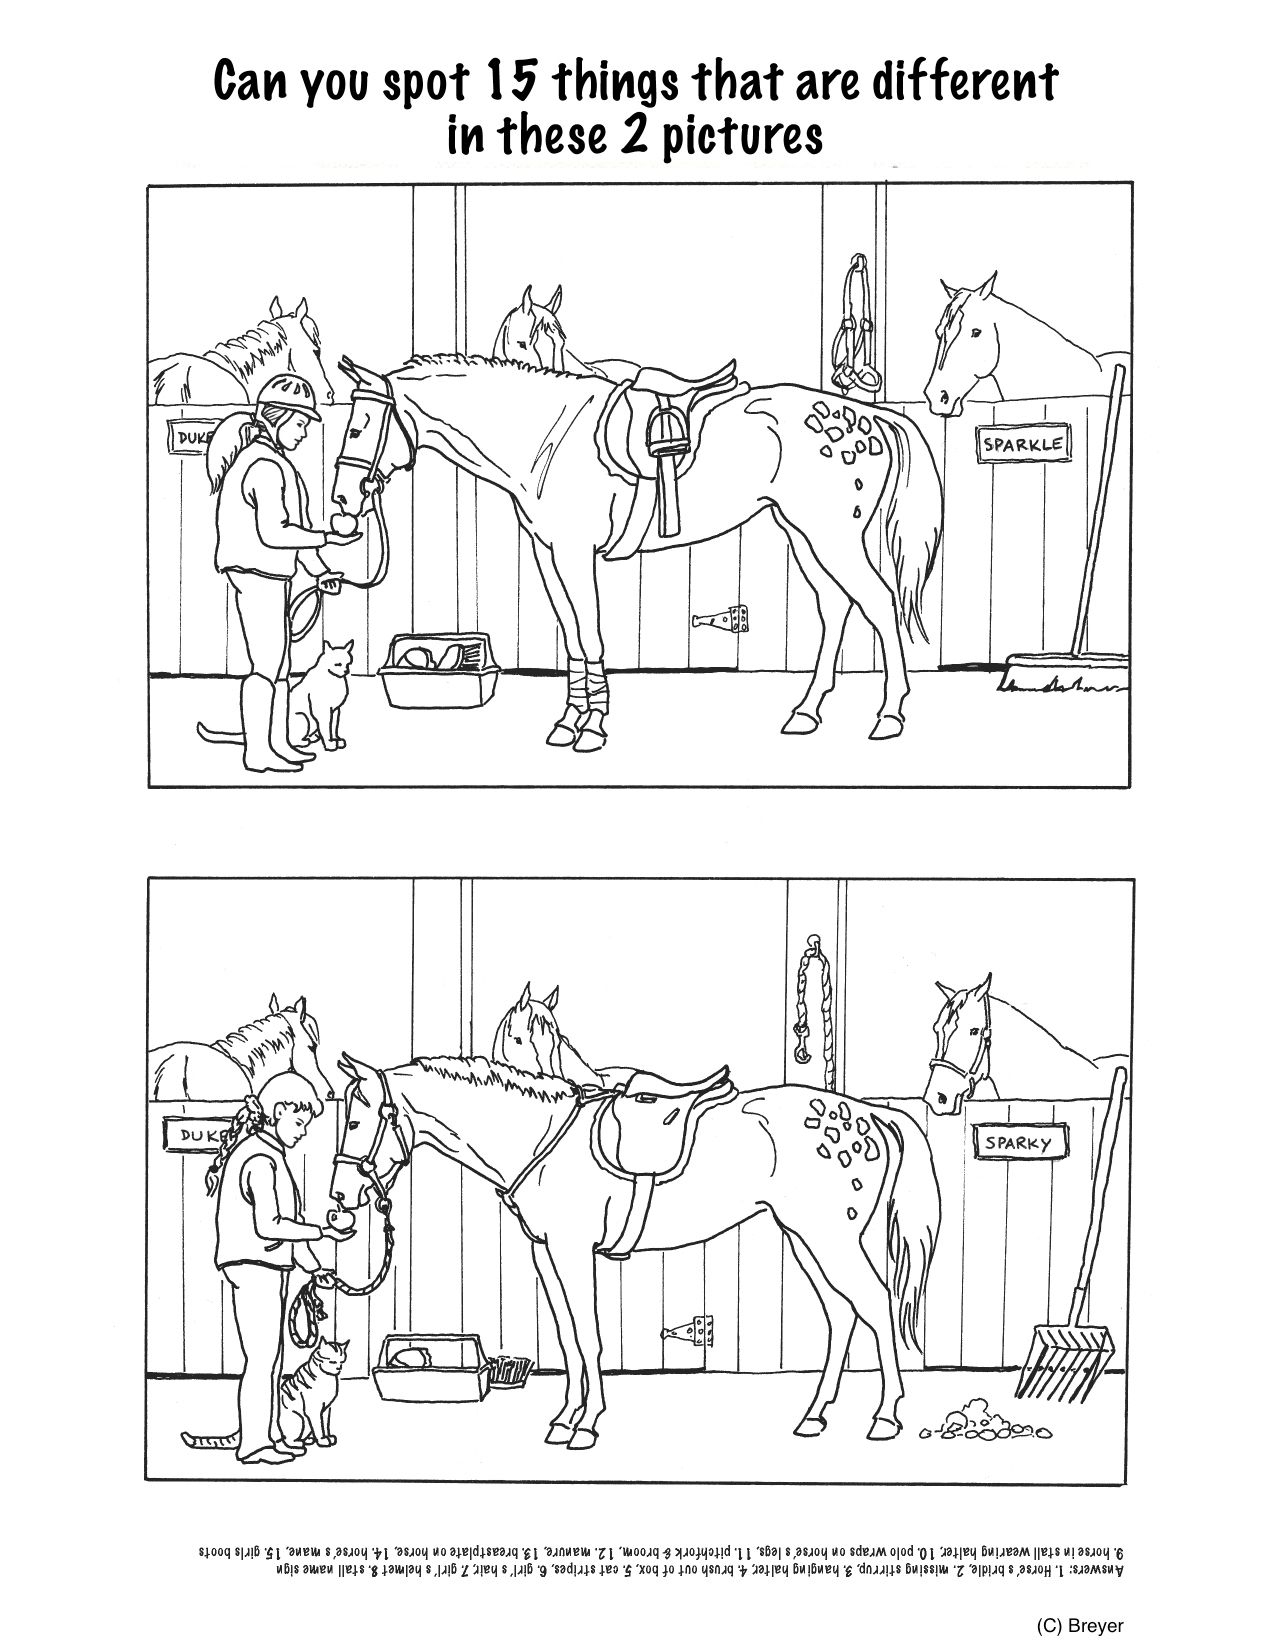 Horse Projects For Kids | Spot The Differences - Stable | Mind's Eye - Printable Horse Puzzle